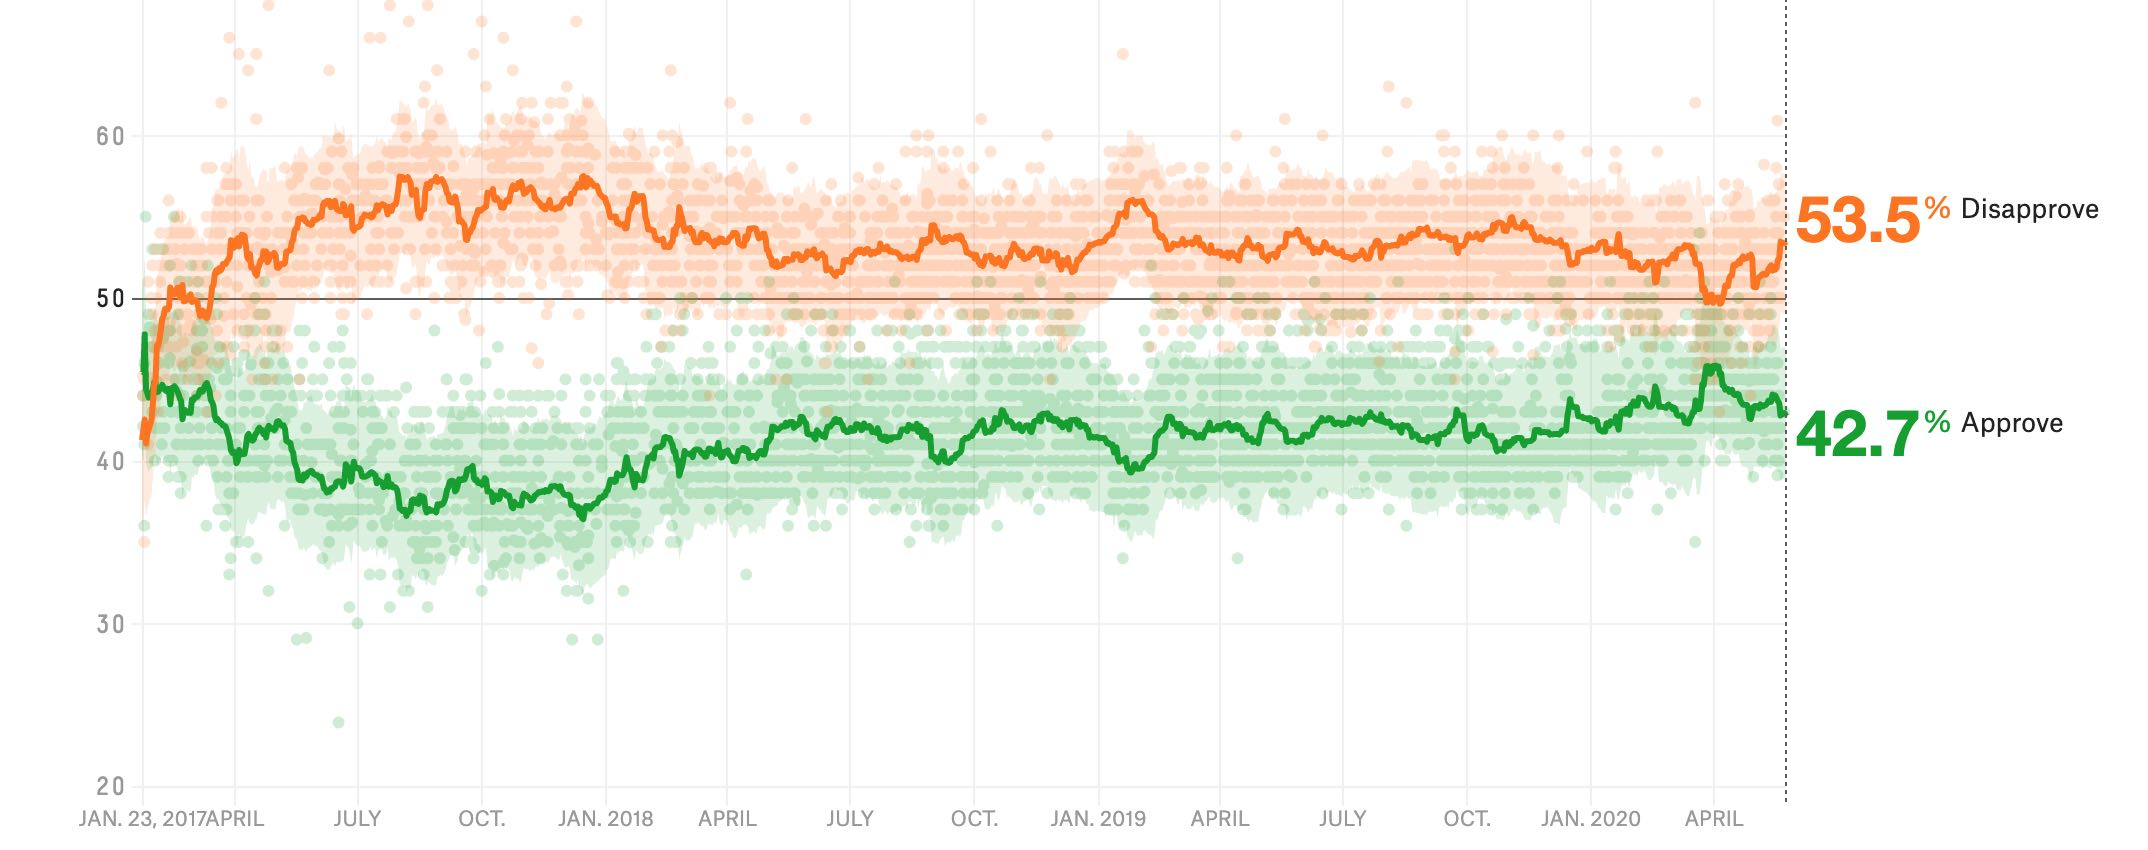 At the end of March, Trump was at 50% disapprove and 45.8% approve, since then his disapproval has crept steadily up to 53.5% and his approval has  steadily sunk to 42.7%